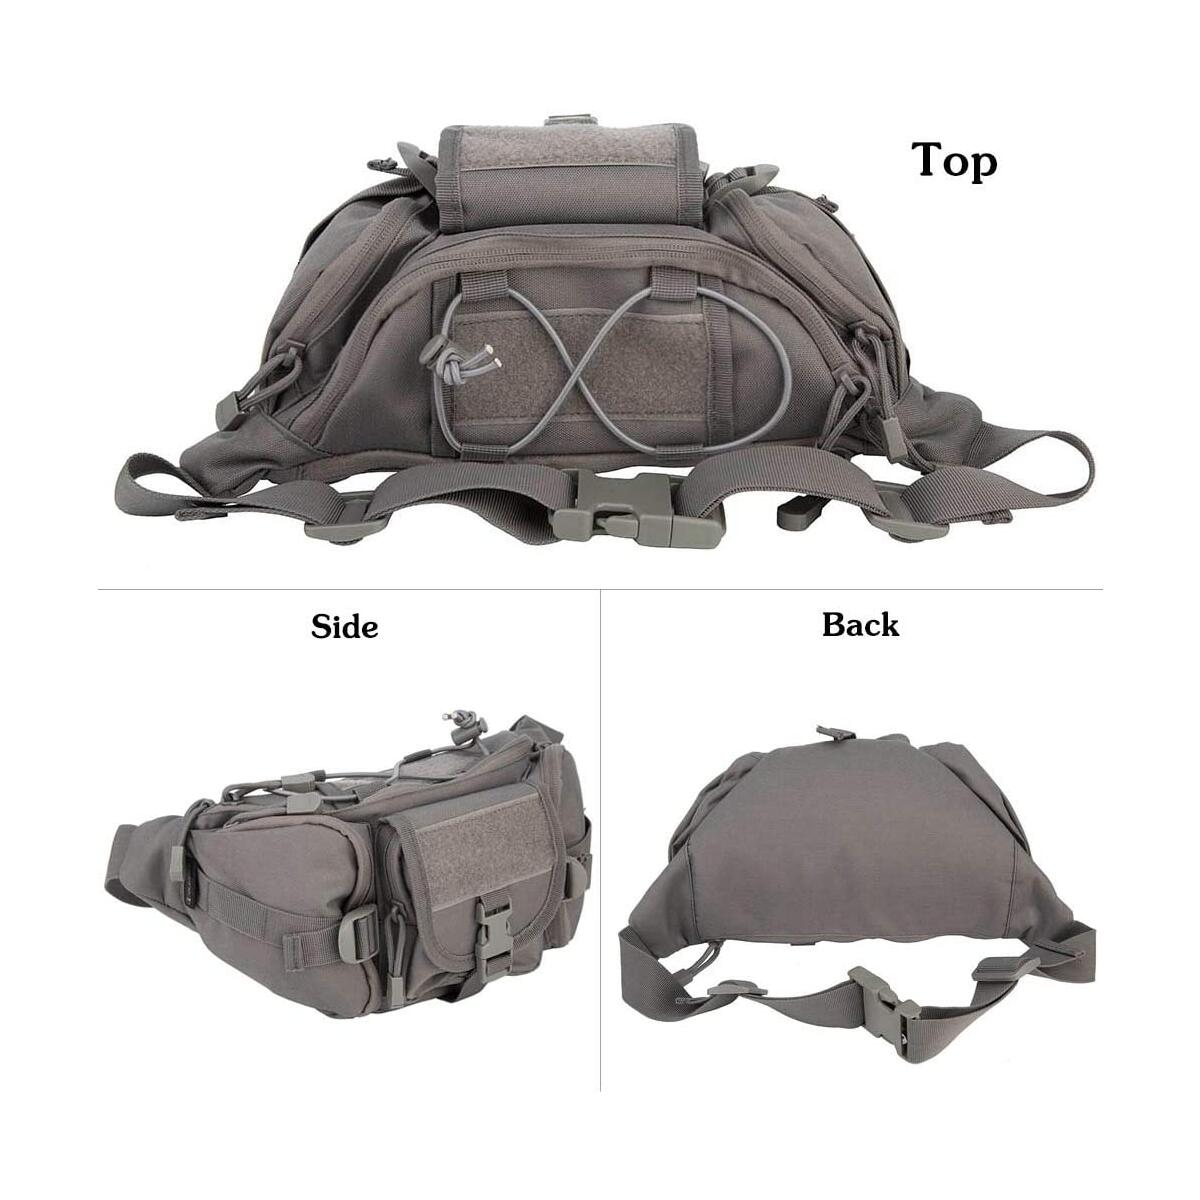 OLEADER Tactical Waist Pack Military Fanny Packs Hip Belt Bag Pouch Tool Organizer for Outdoor Hiking Climbing Fishing Hunting Bum Bag